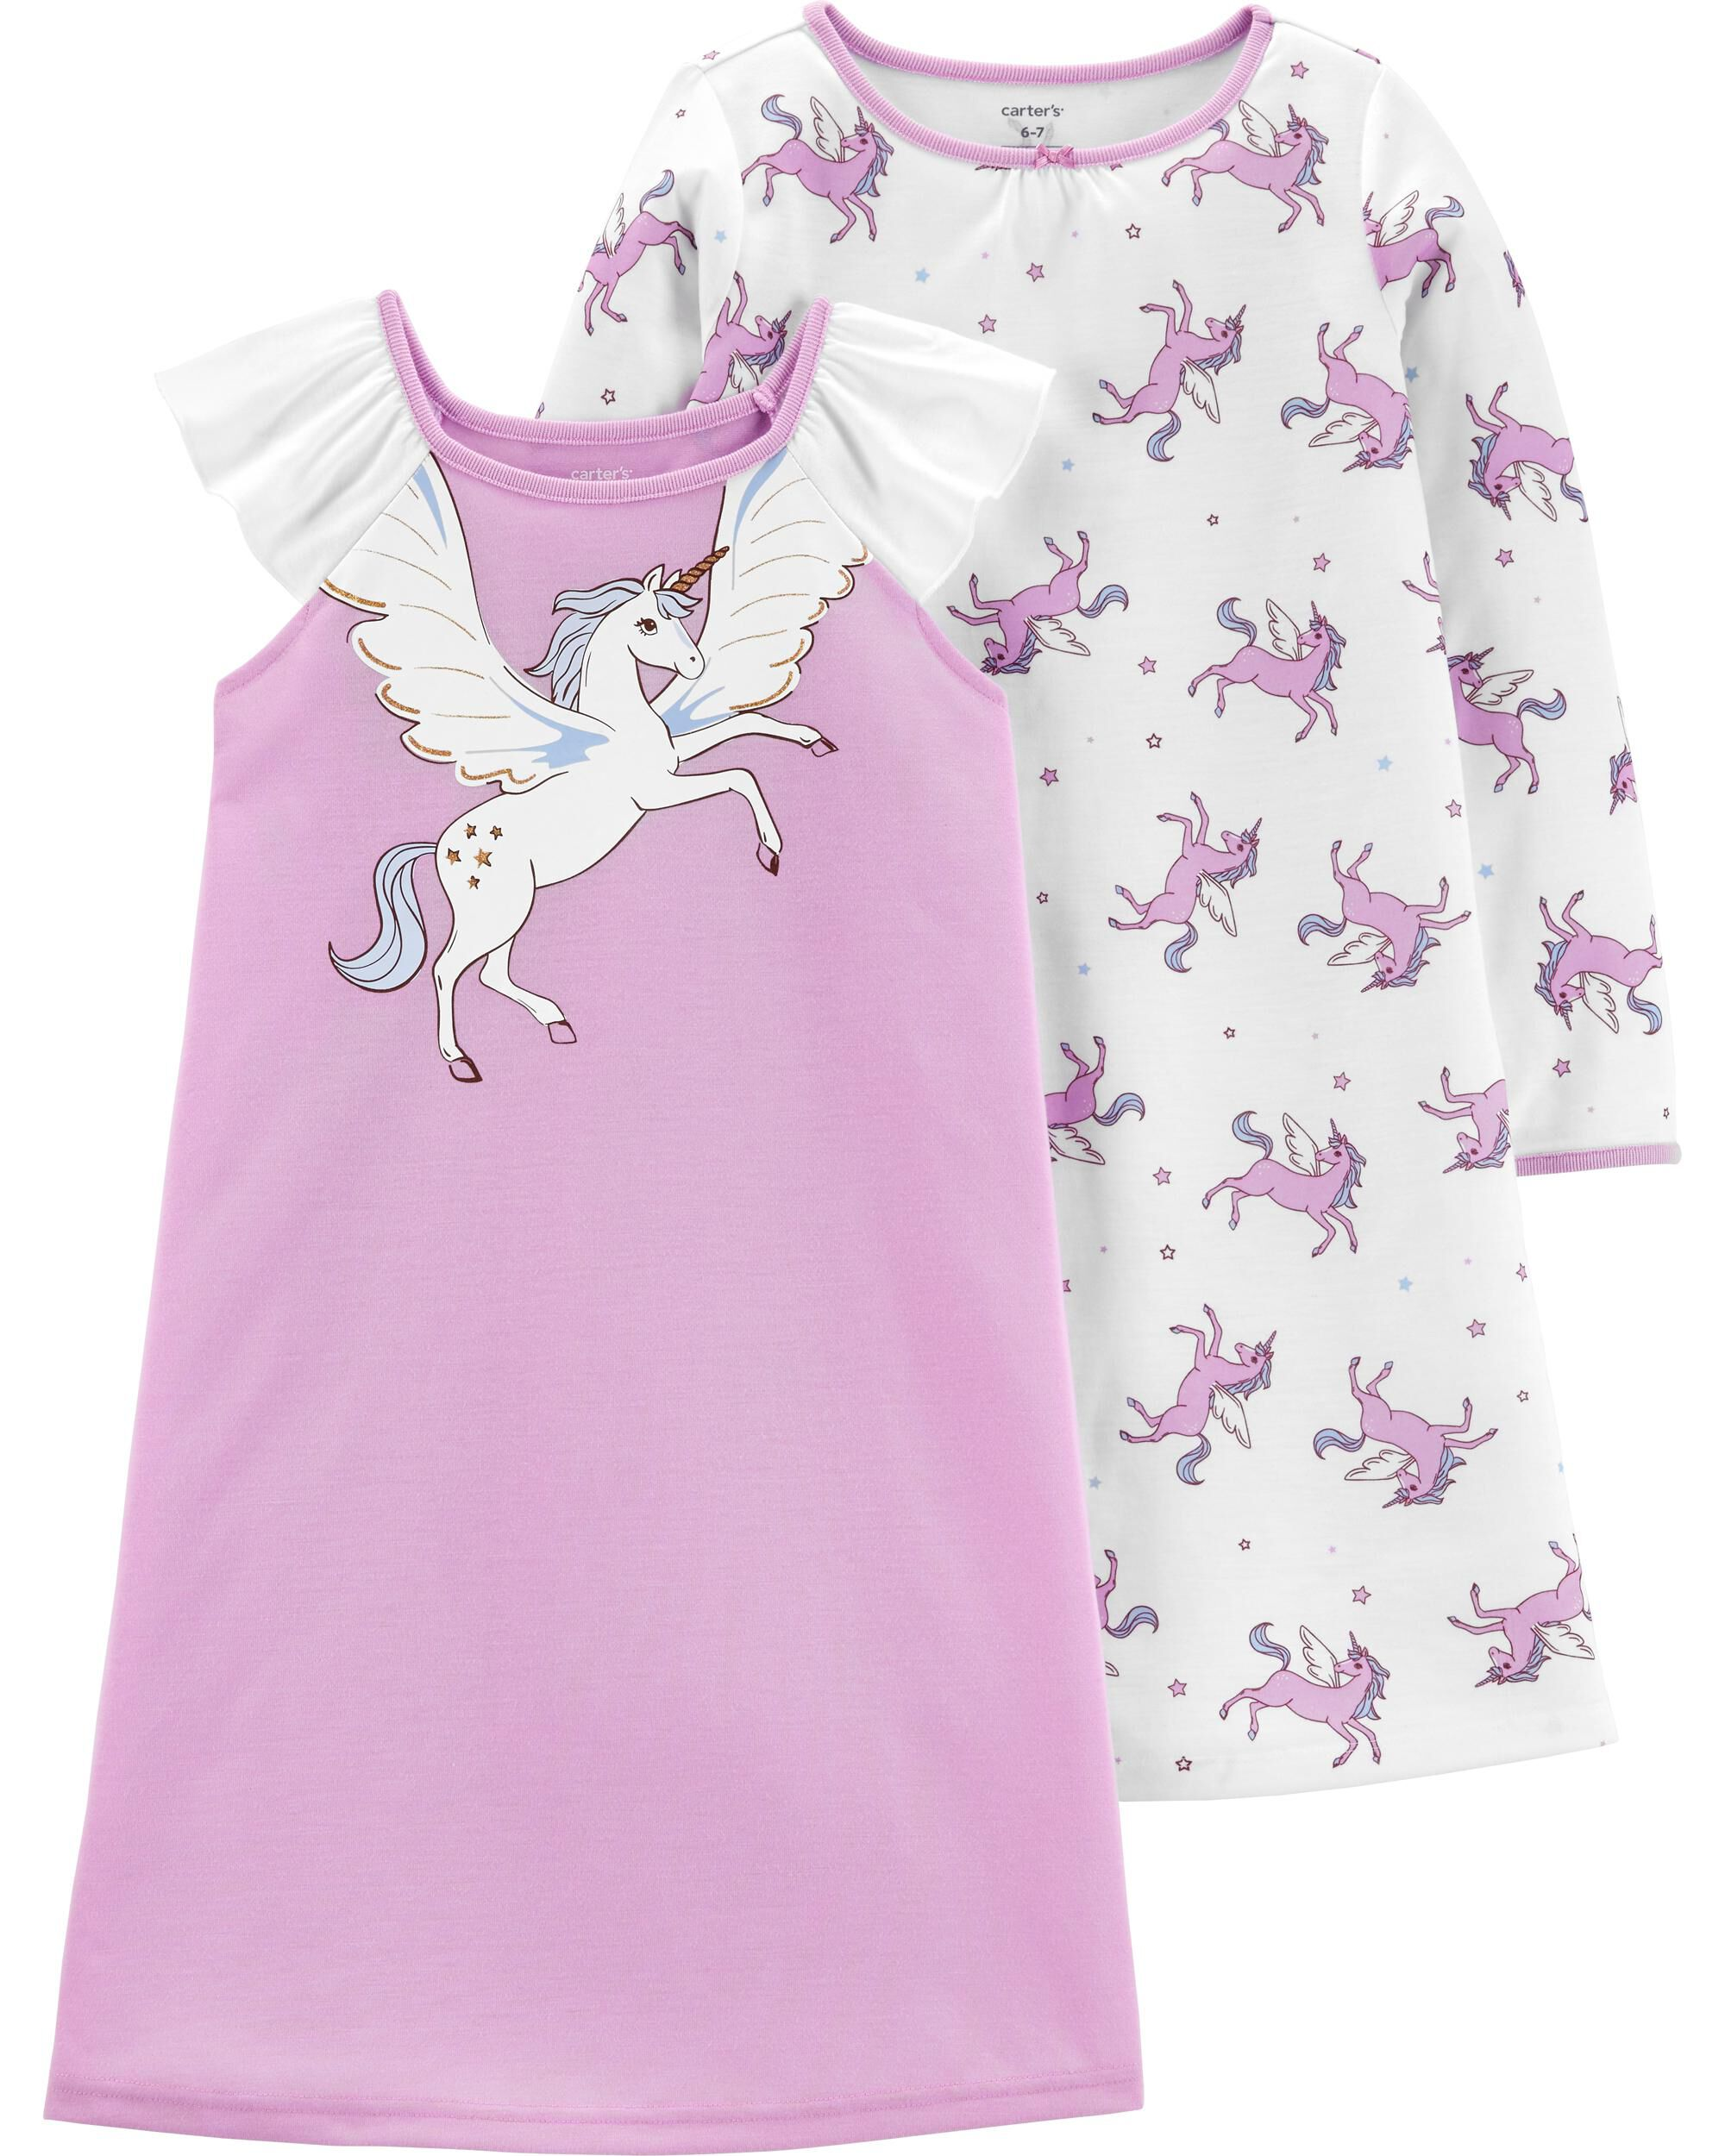 Baby & Toddler Clothing Special Section Just One You Girls Size 4t Purple Hearts Fleece Zippered Sleeper